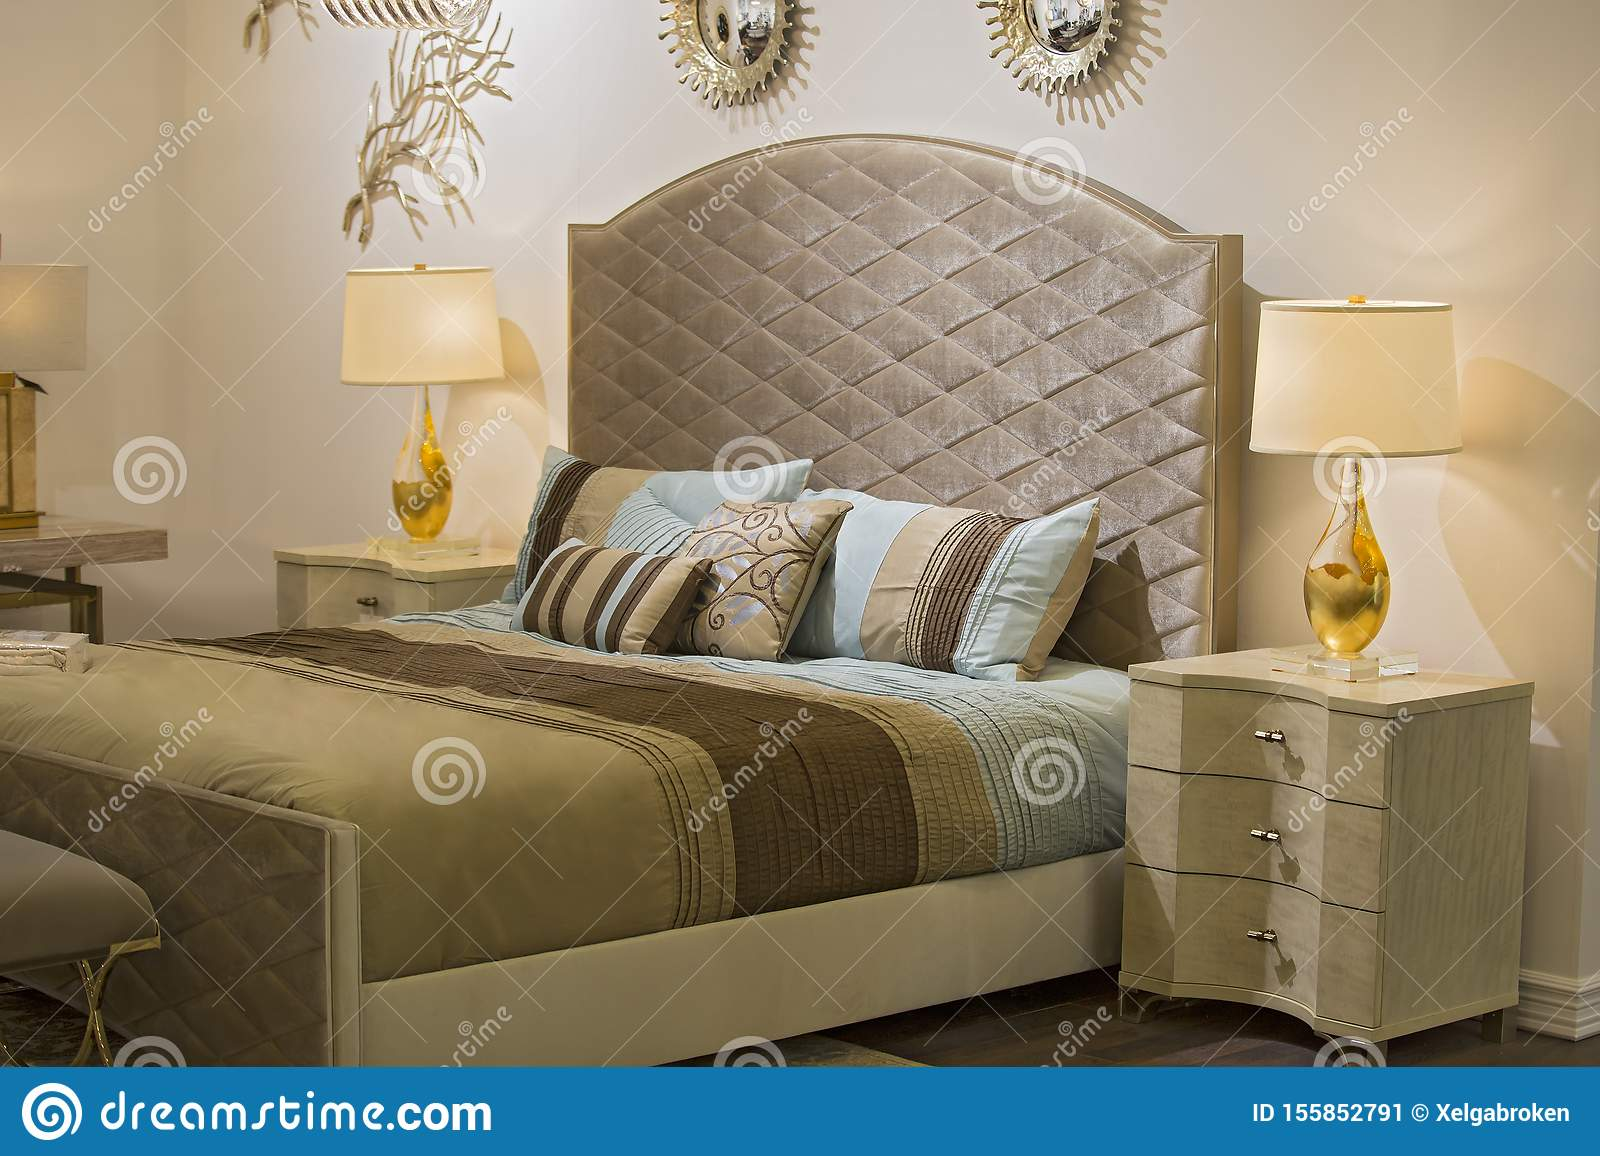 Picture of: Fashionable Modern Bedroom Bed Chandelier Mirrors On The Wall Bedside Table And Lamp Beautiful Textiles On The Bed Chic Stock Image Image Of Architecture Apartment 155852791